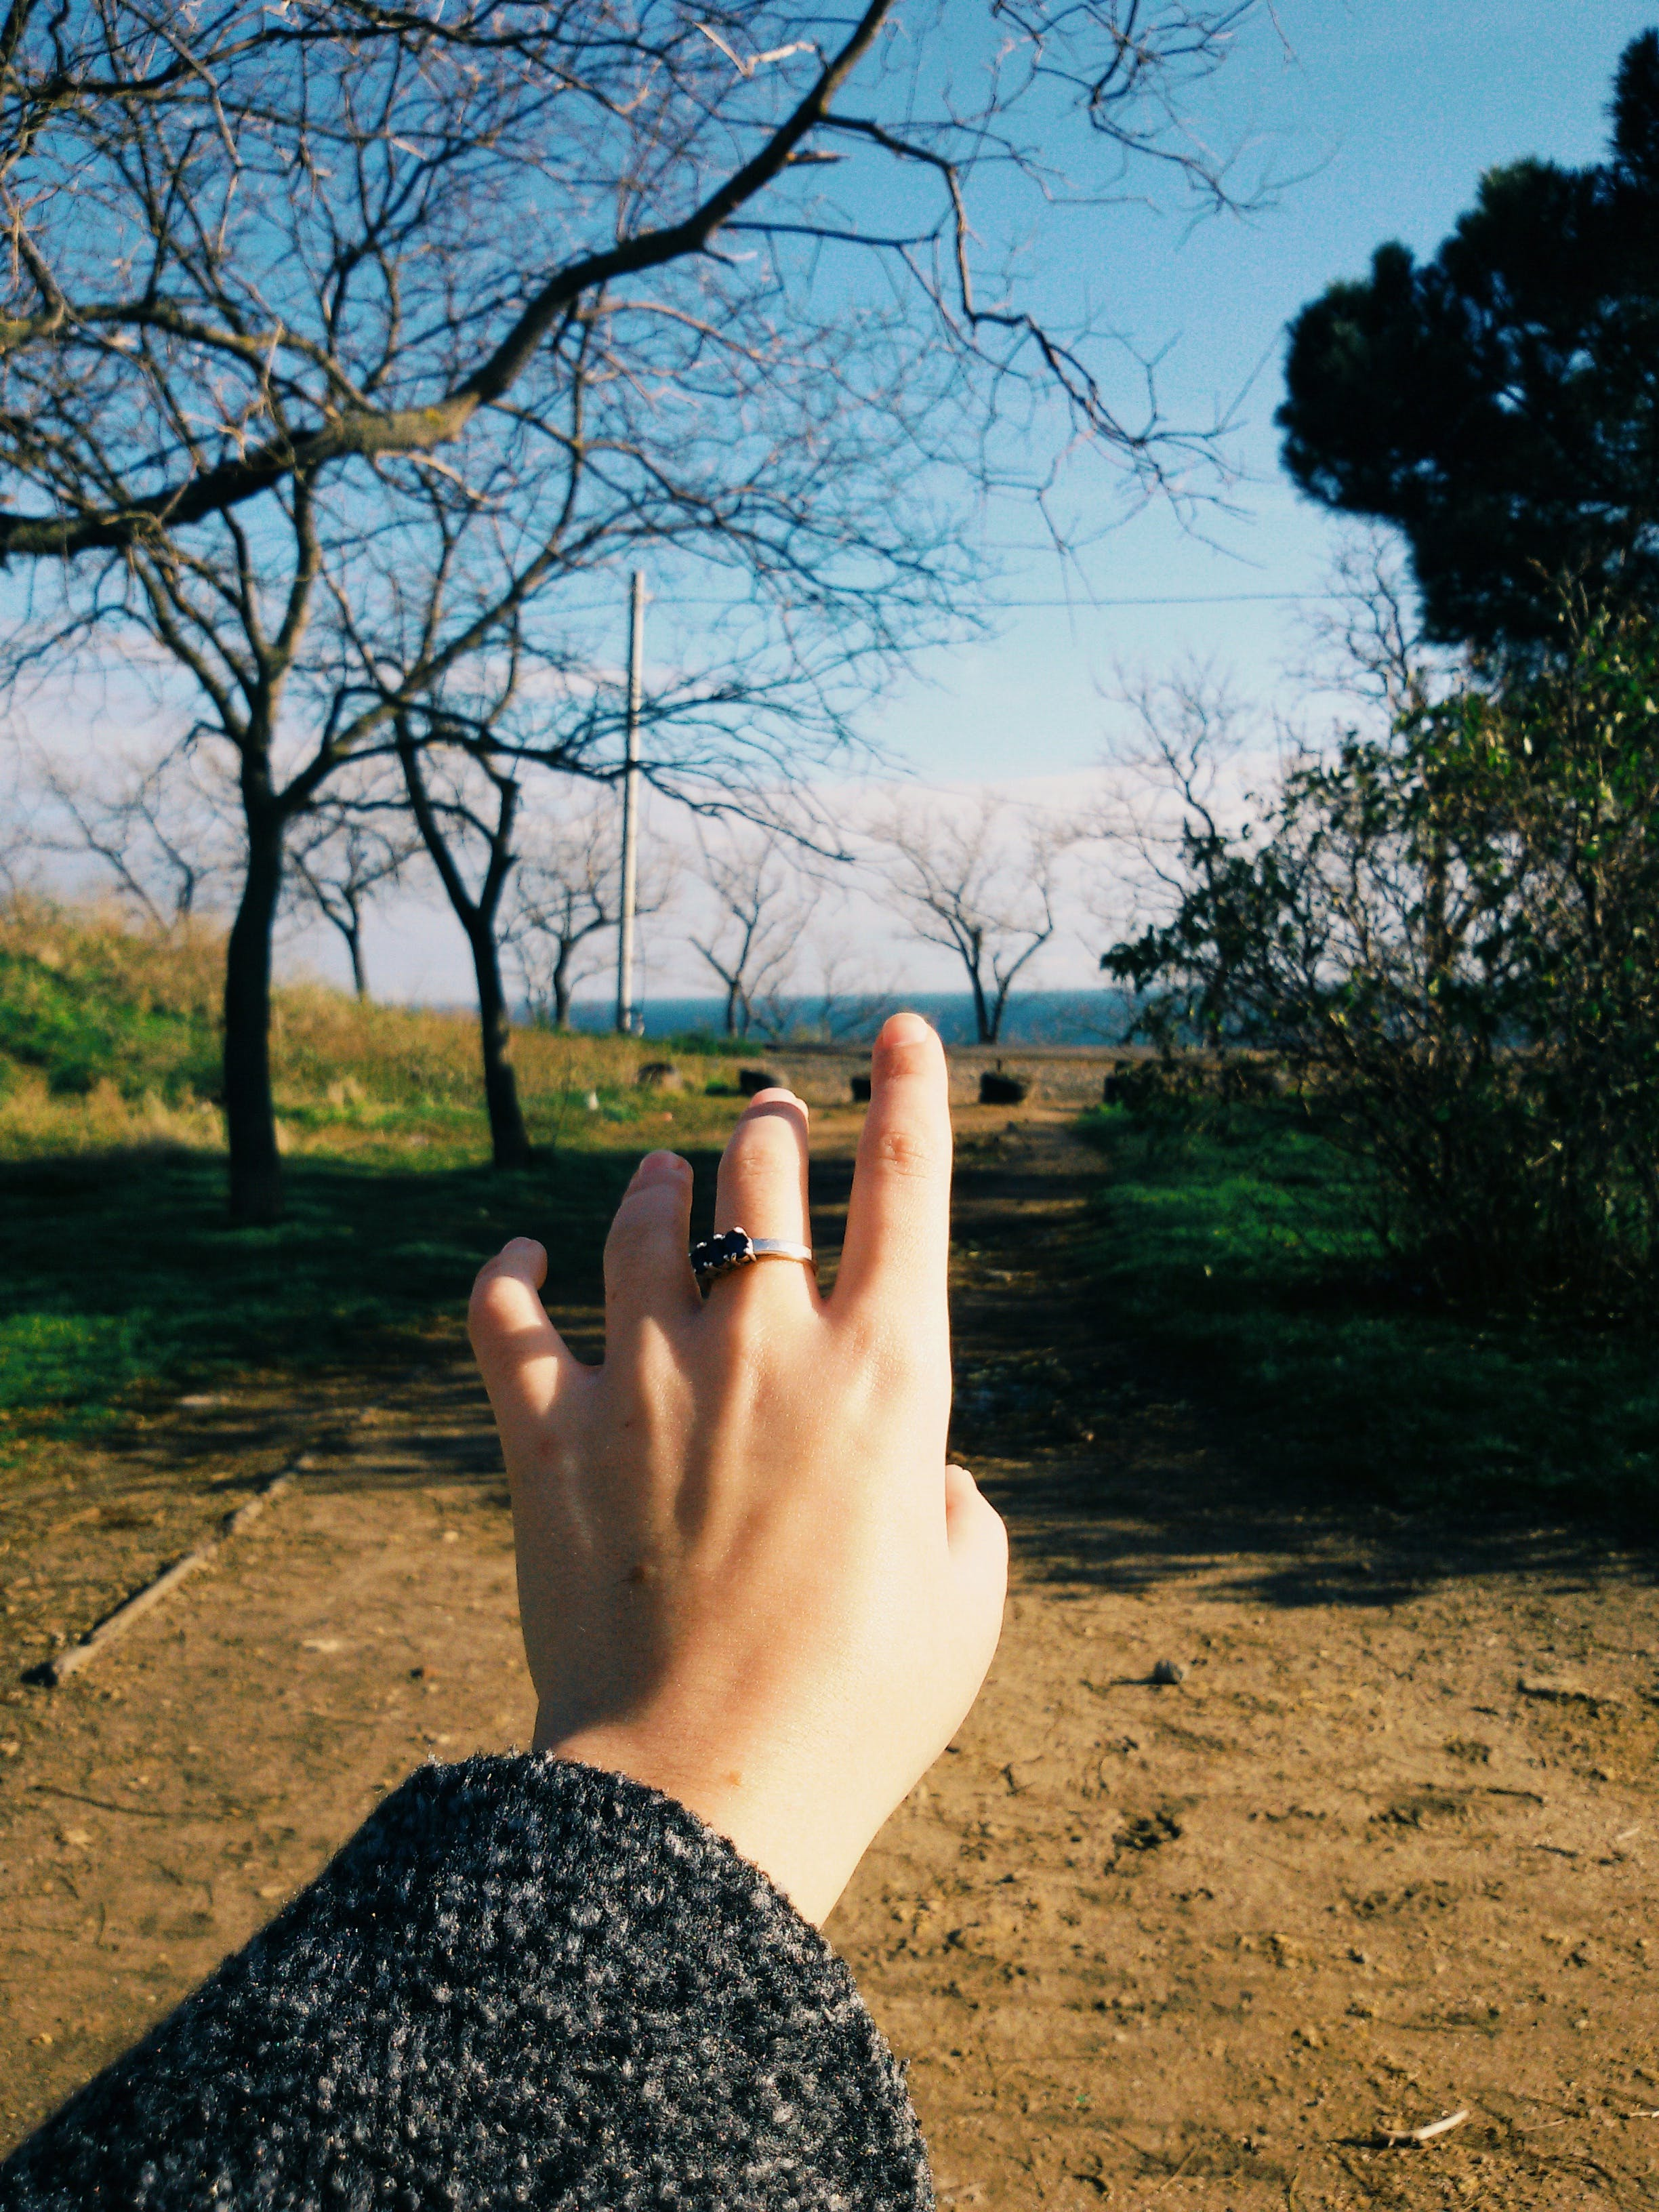 Woman Hand on Bare Tree Against Sky